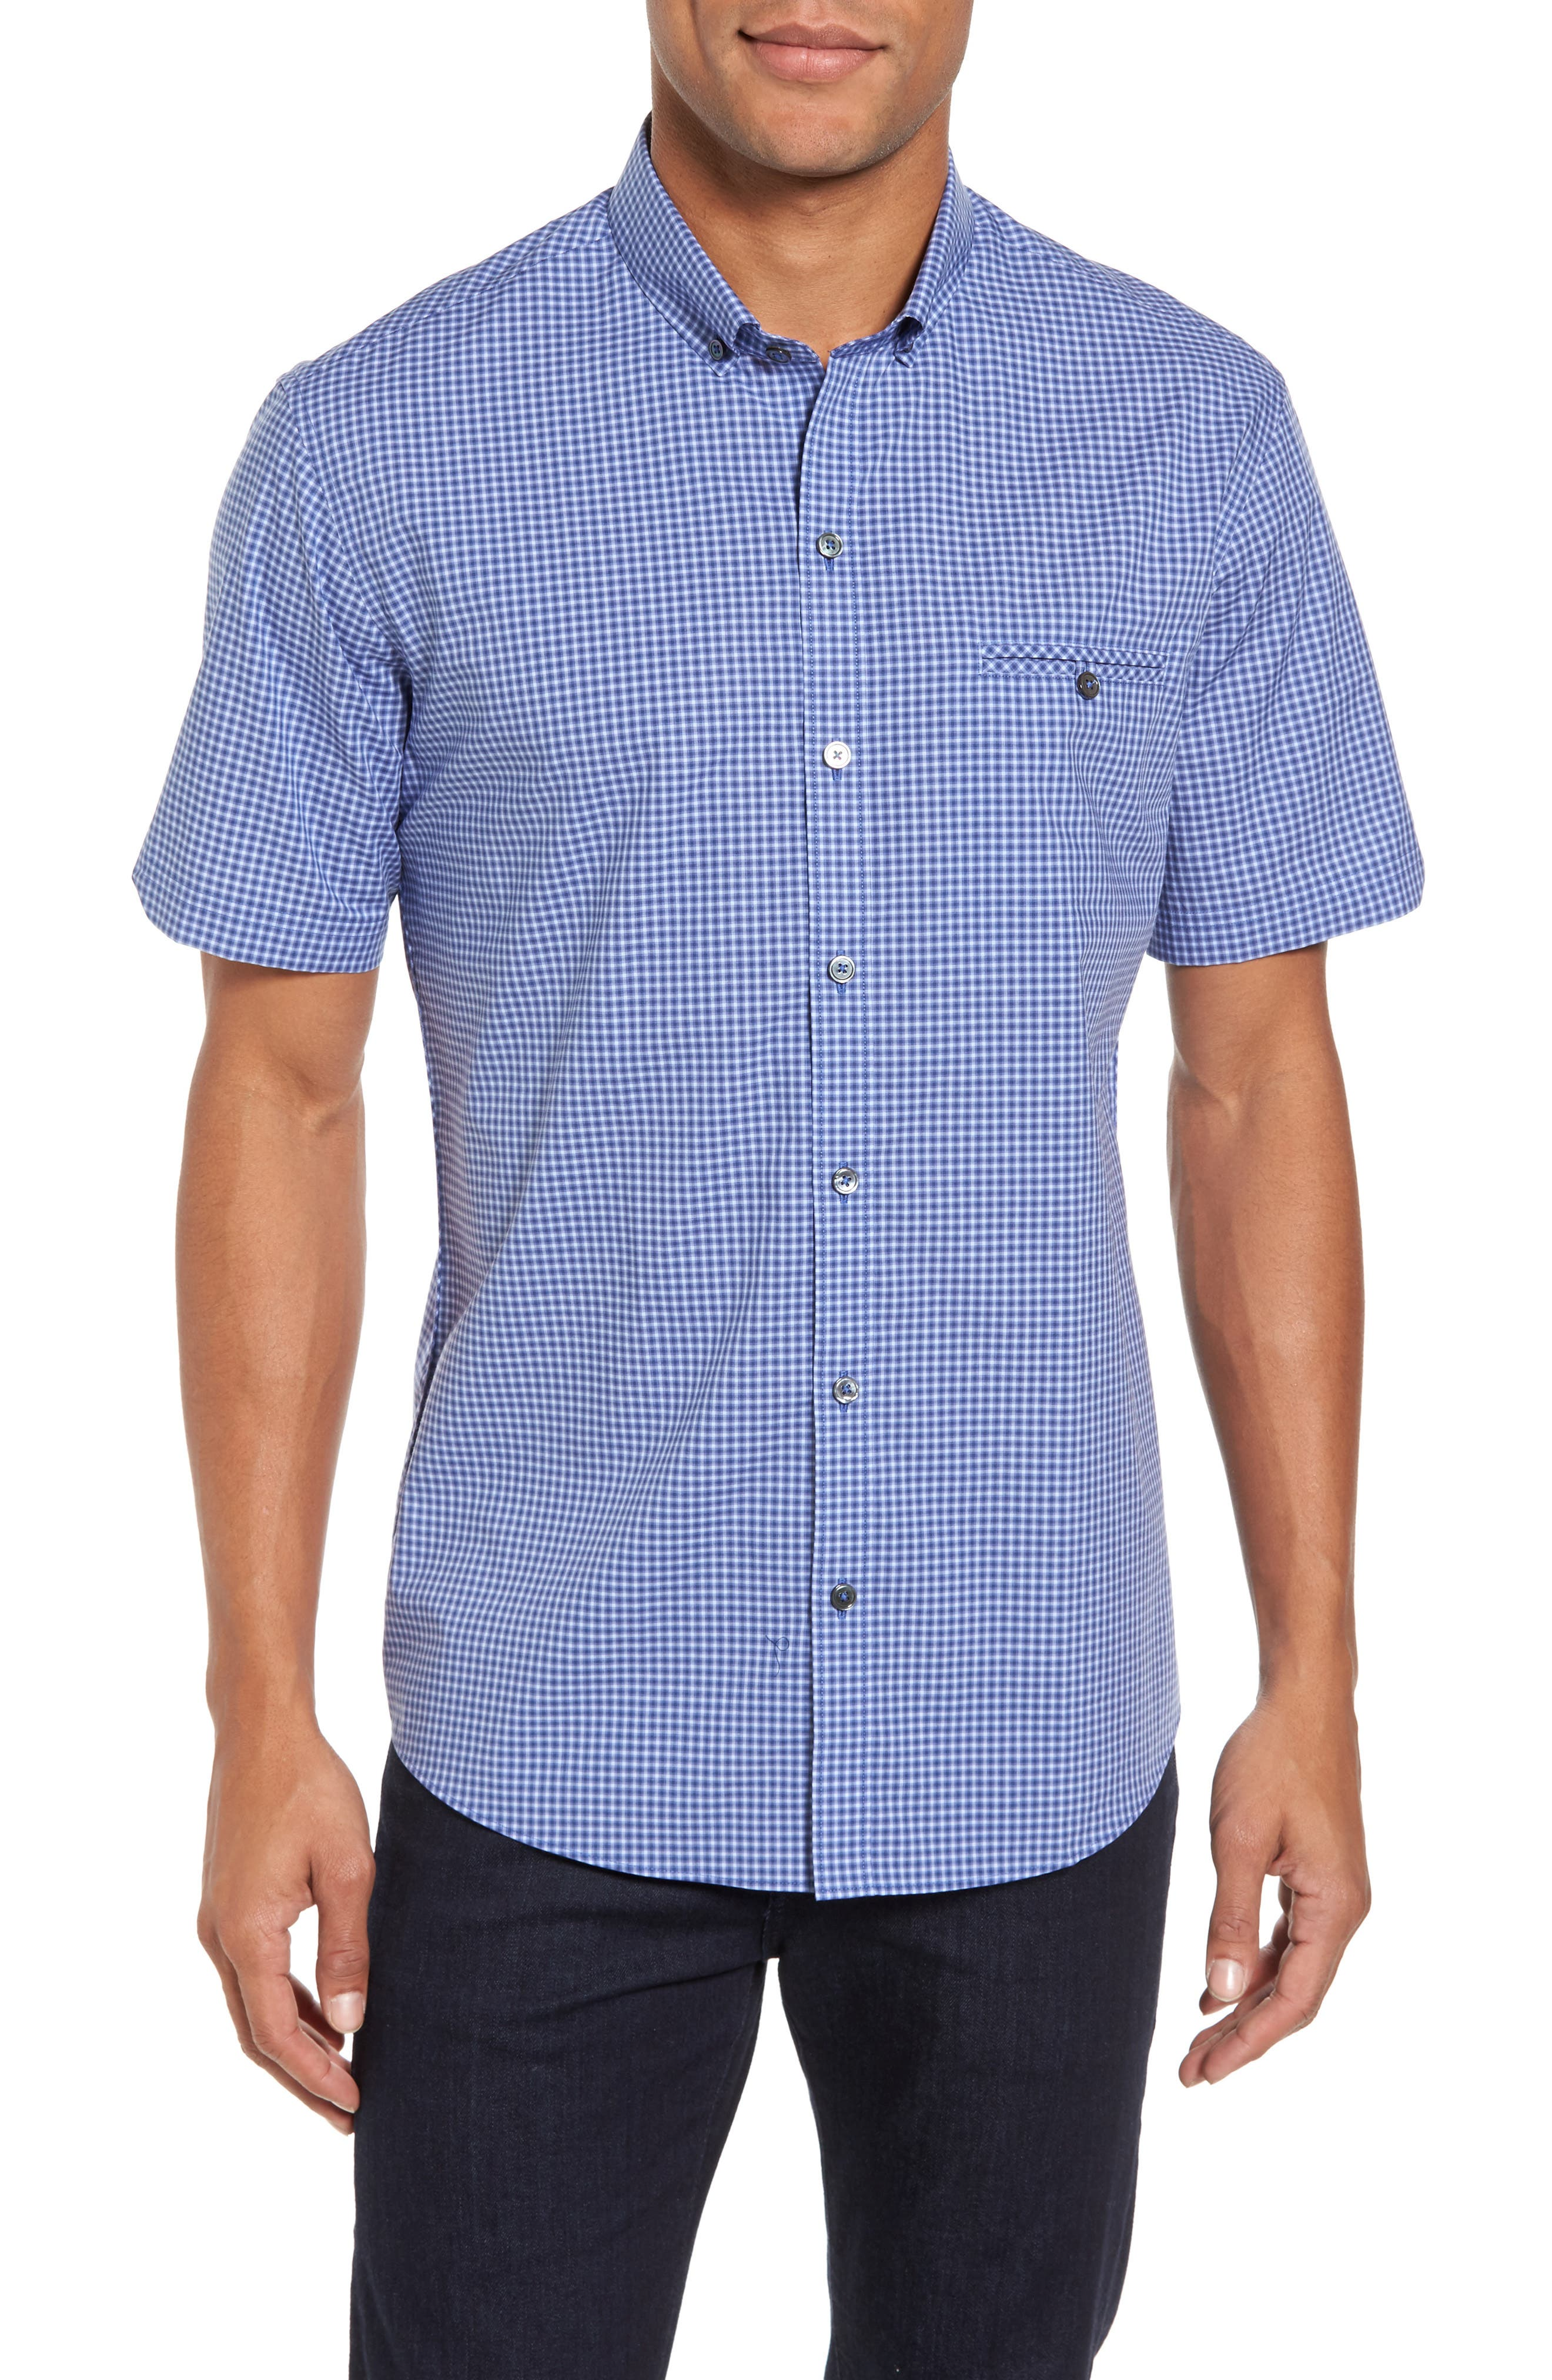 Alternate Image 1 Selected - Zachary Prell Ahmed Slim Fit Plaid Sport Shirt